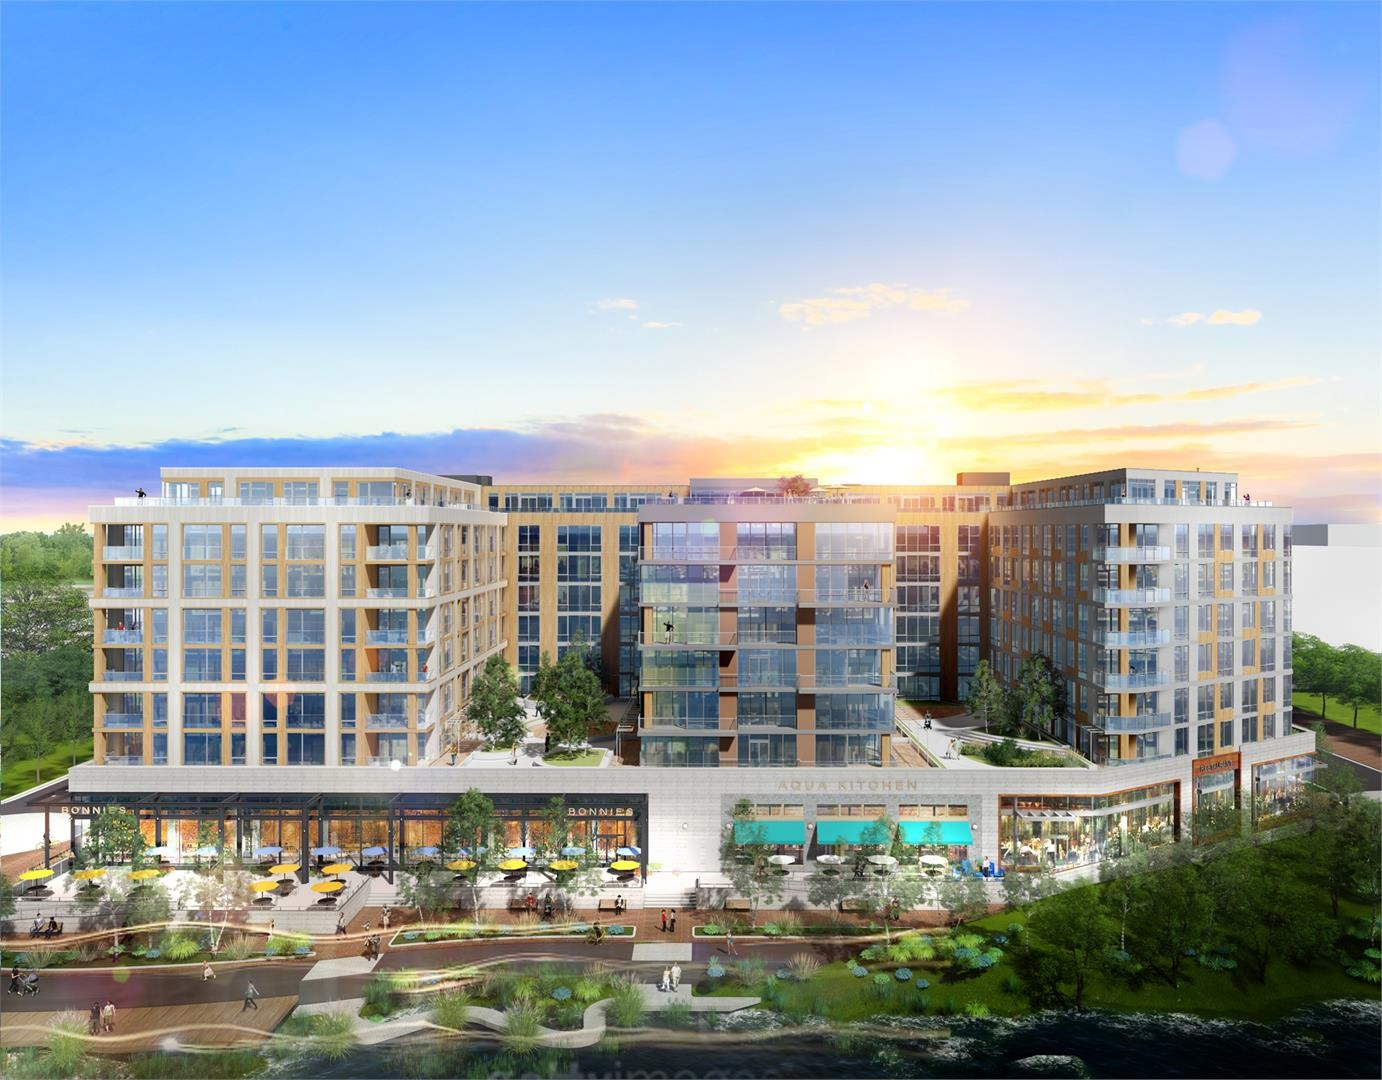 CBG builds River Point, a 485-Unit Renovated Mixed-Use Community in Washington, DC - Image #1